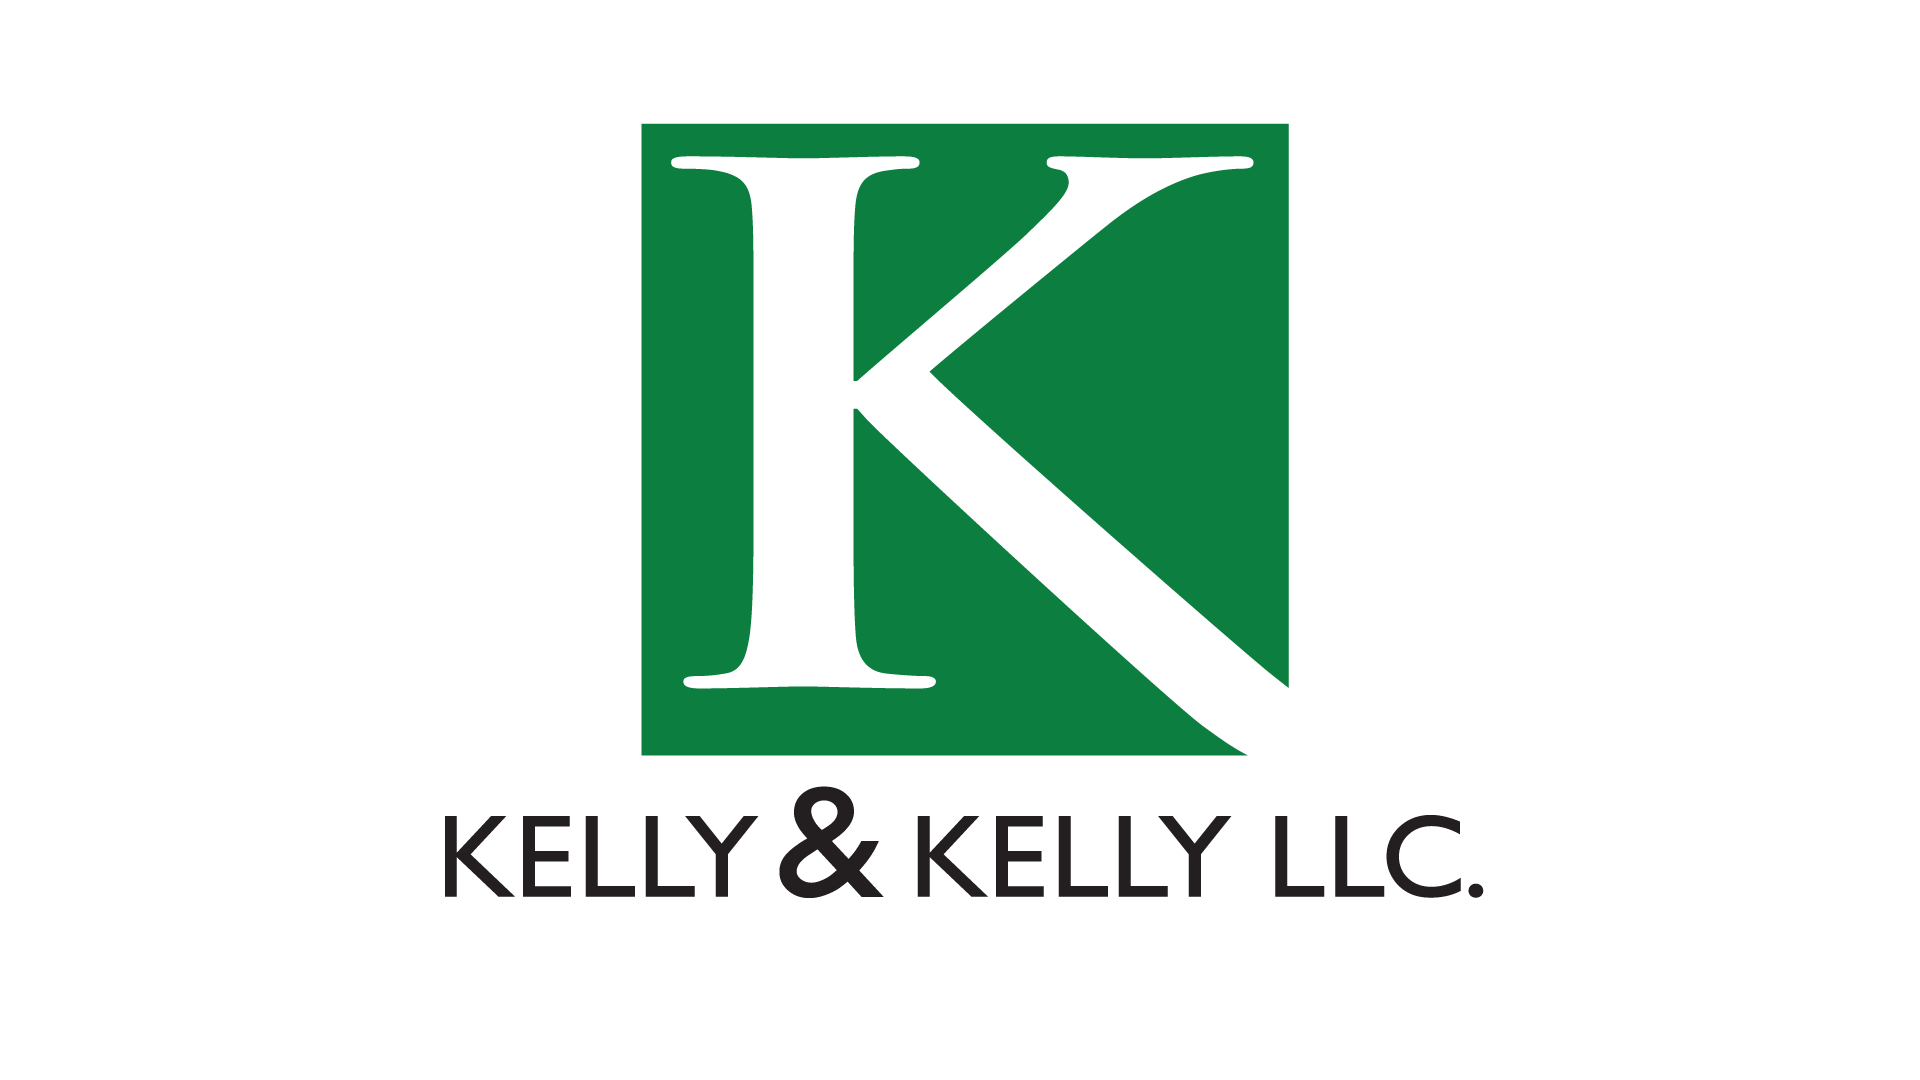 Kelly and Kelly LLC